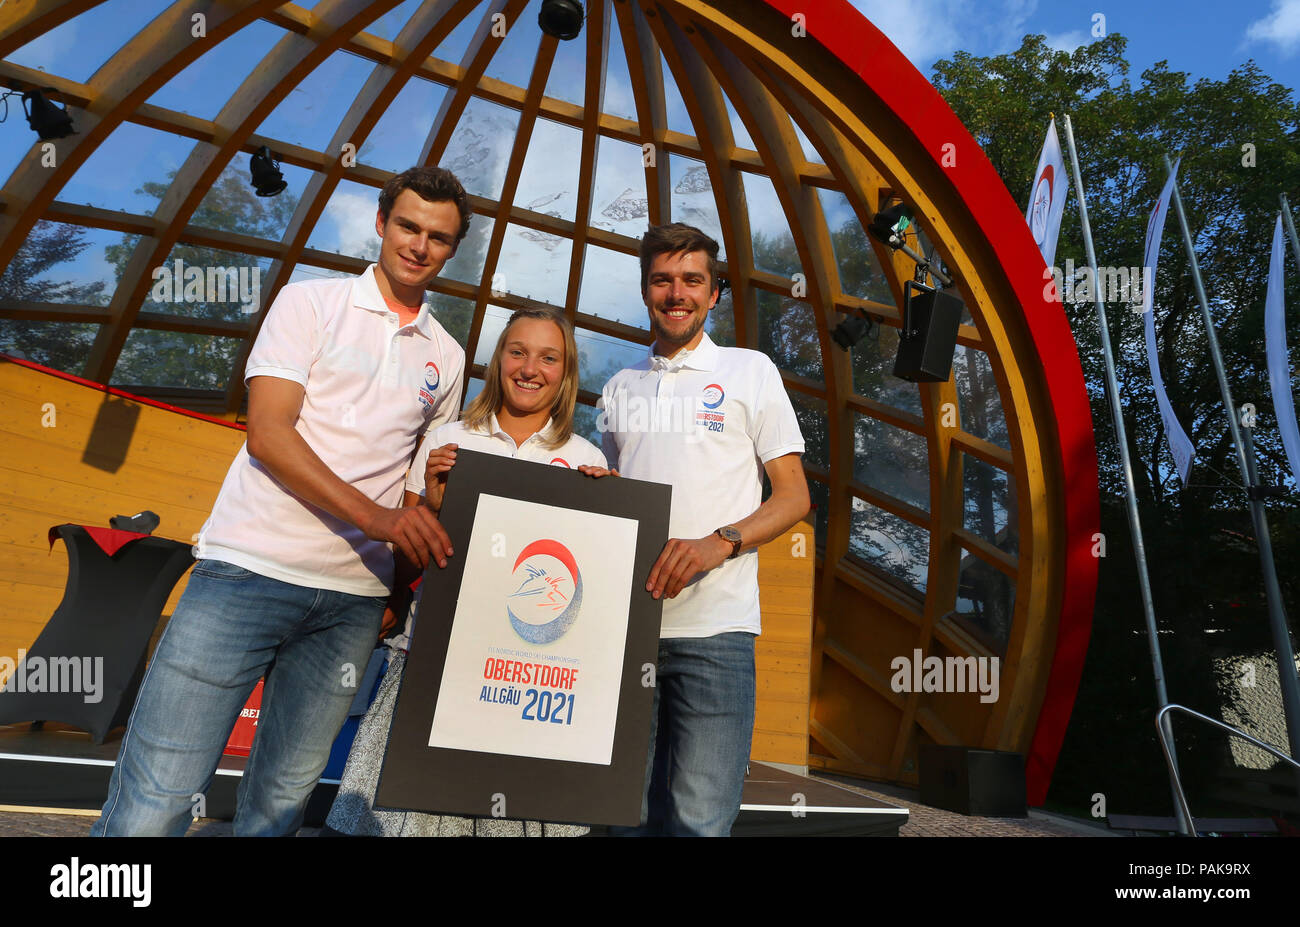 Oberstdorf, Germany. 23rd July, 2018. 23.07.2018, Bayern, Oberstdorf: The Nordic combined athletes Johannes Rydzek (r), Vinzenz Geiger (l) and ski jumper Katharina Althaus (M) present the logo for the FIS Nordic World Ski Championships 2021 on the podium. Credit: Karl-Josef Hildenbrand/dpa/Alamy Live News - Stock Image